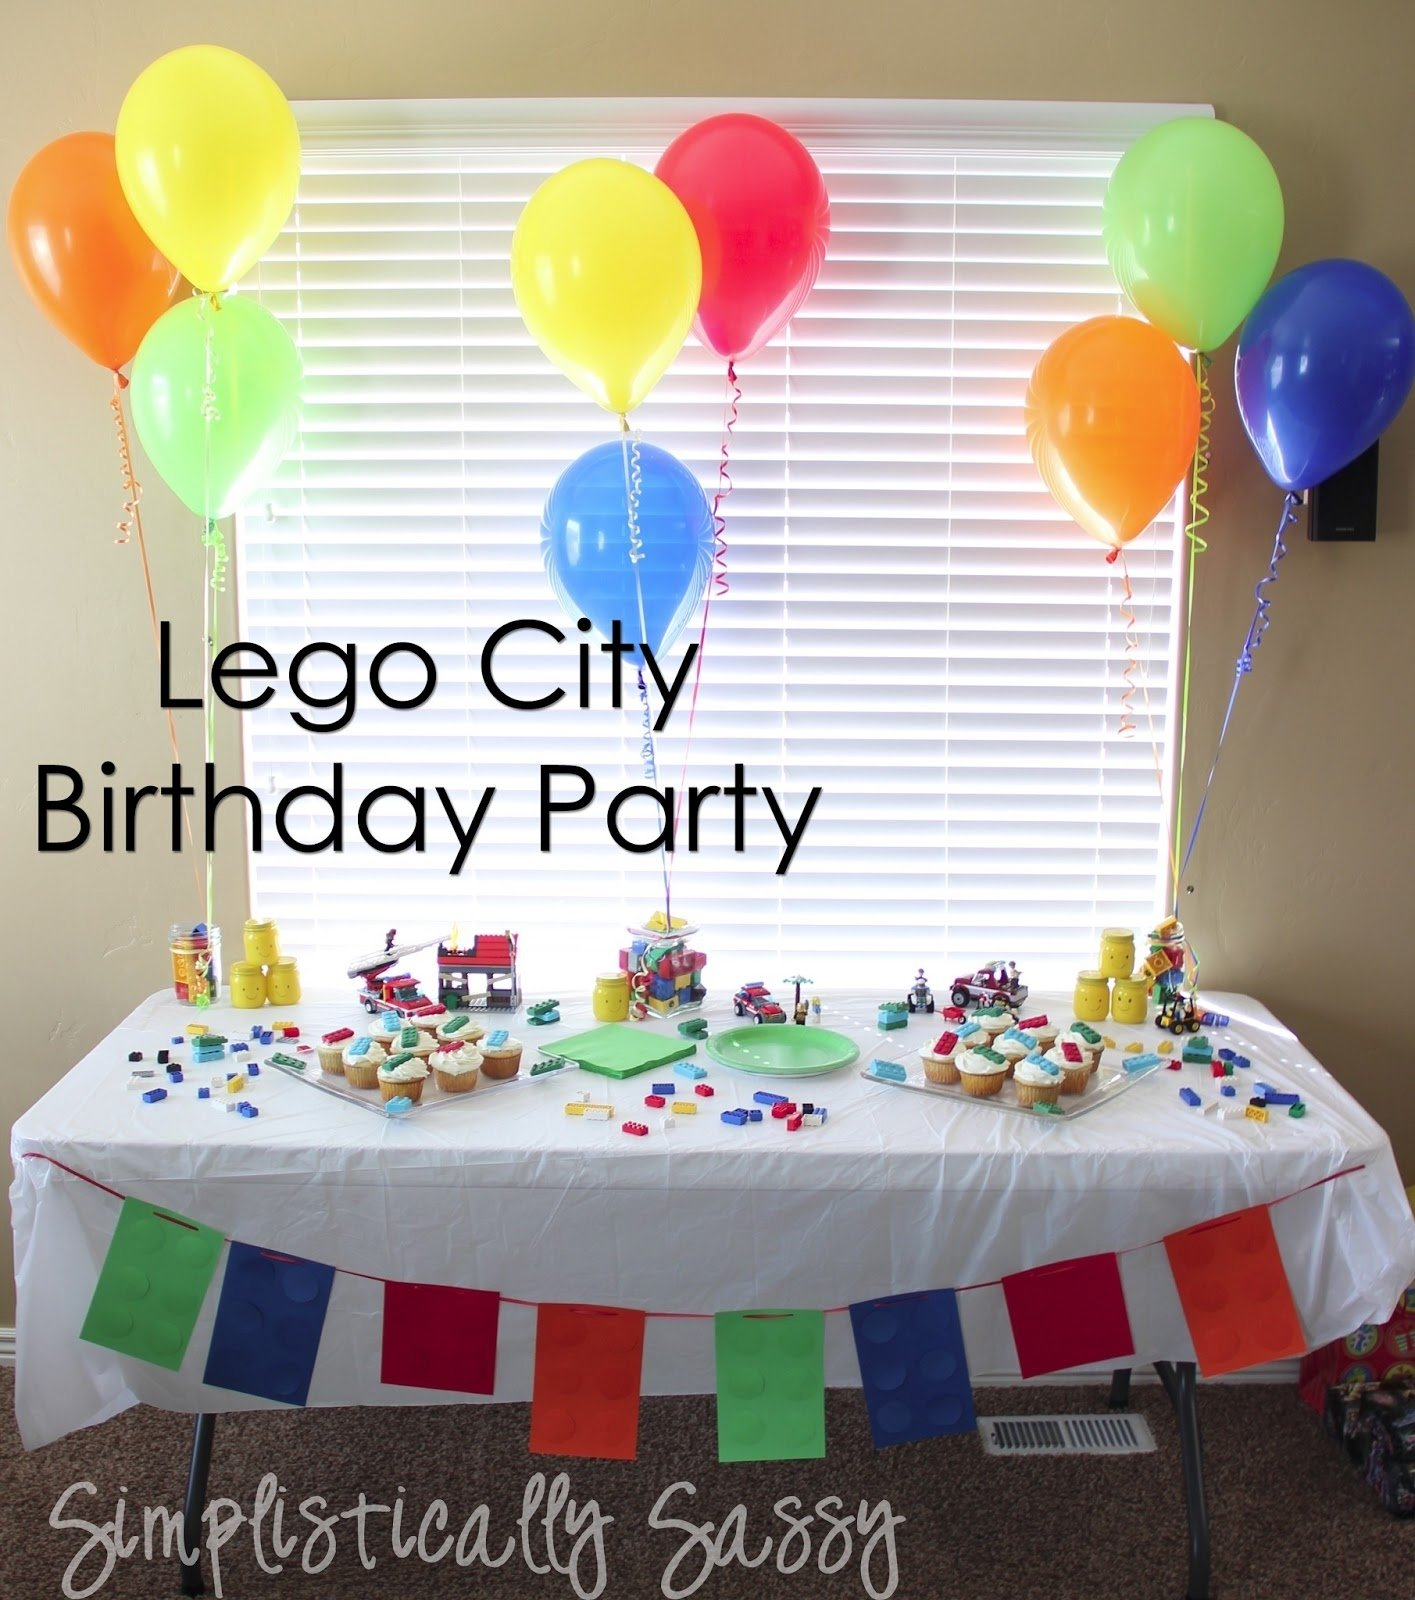 lego birthday partysimplistically sassy